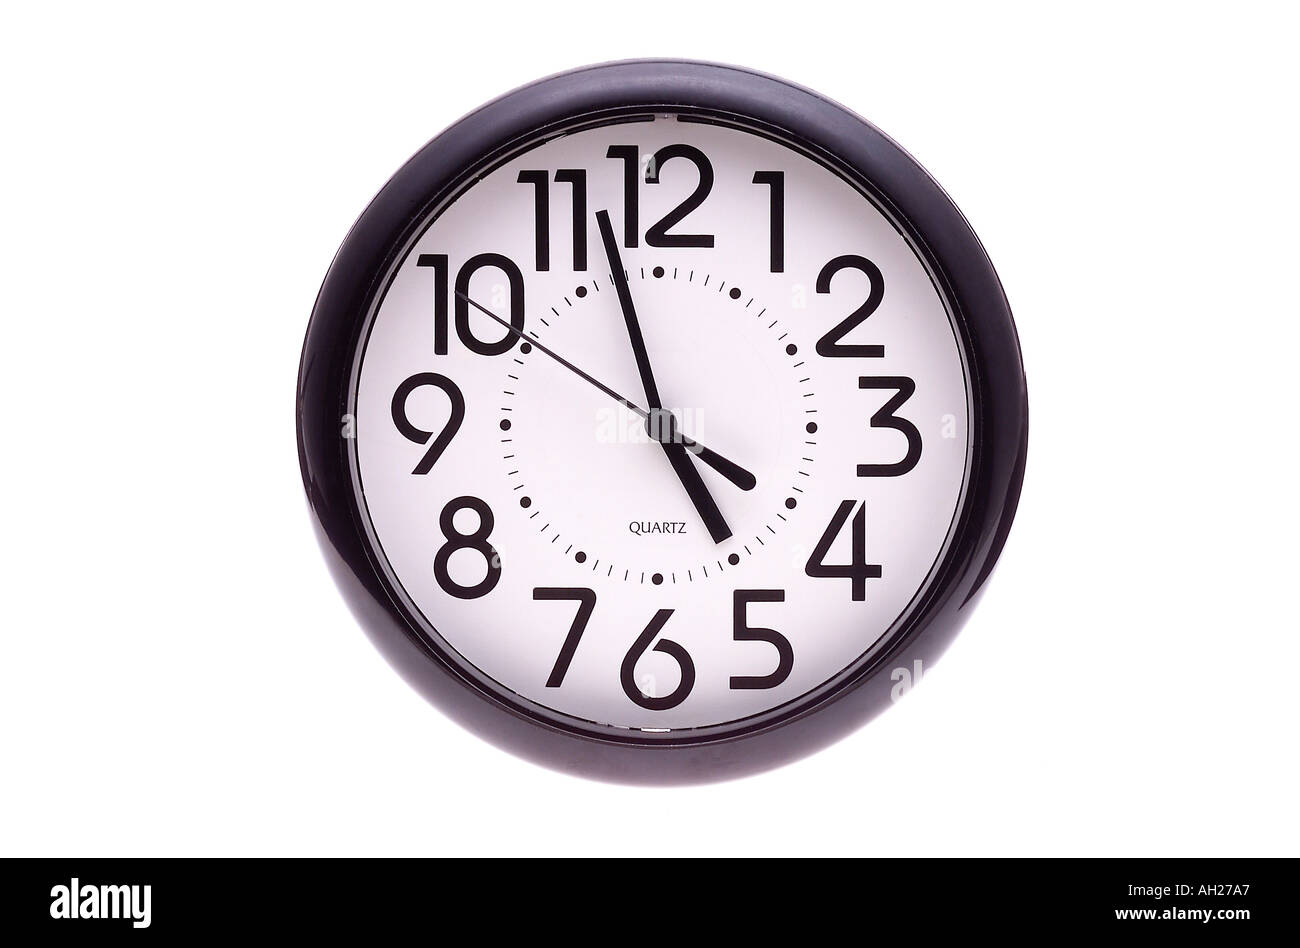 wall clock four fifty eight 4 58 silhouetted on white background - Stock Image